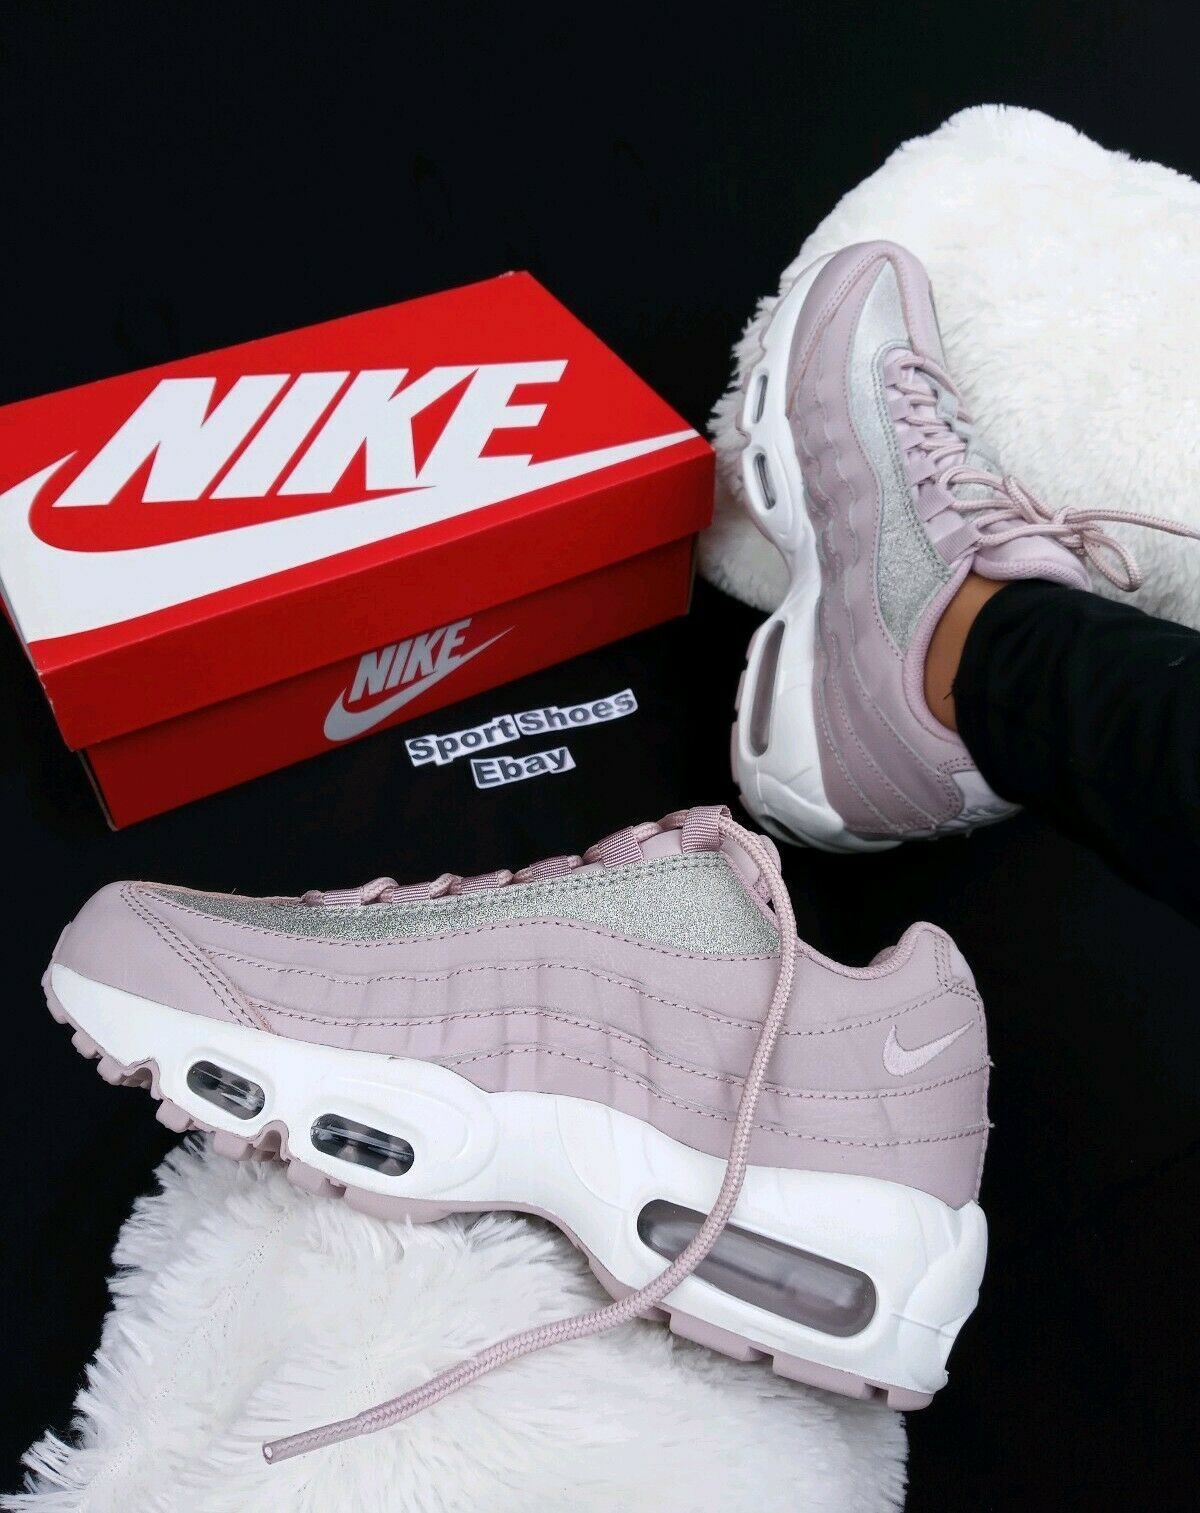 7.5 WOMENS NIKE AIR MAX 95 SE SHINE GLITTER AT0068 600 Particle pink PINK PURPLE